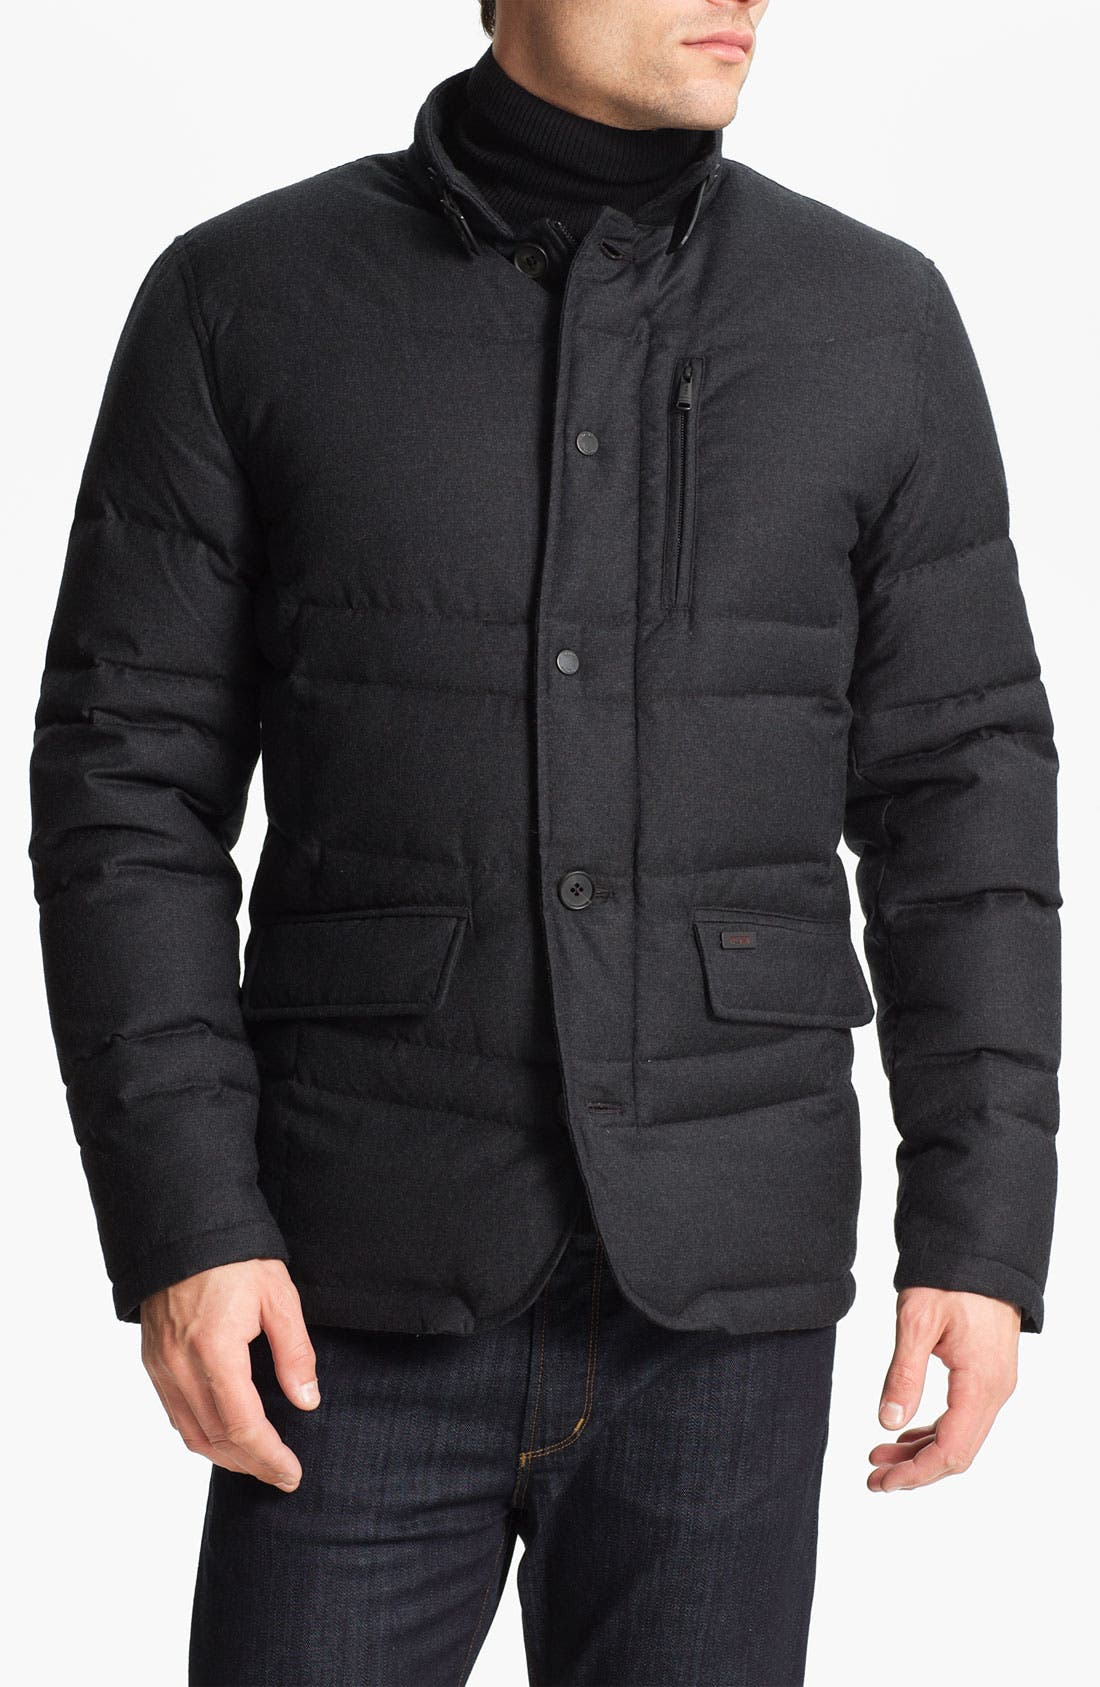 Alternate Image 1 Selected - Tumi Wool & Cashmere Puffer Jacket with Down Fill